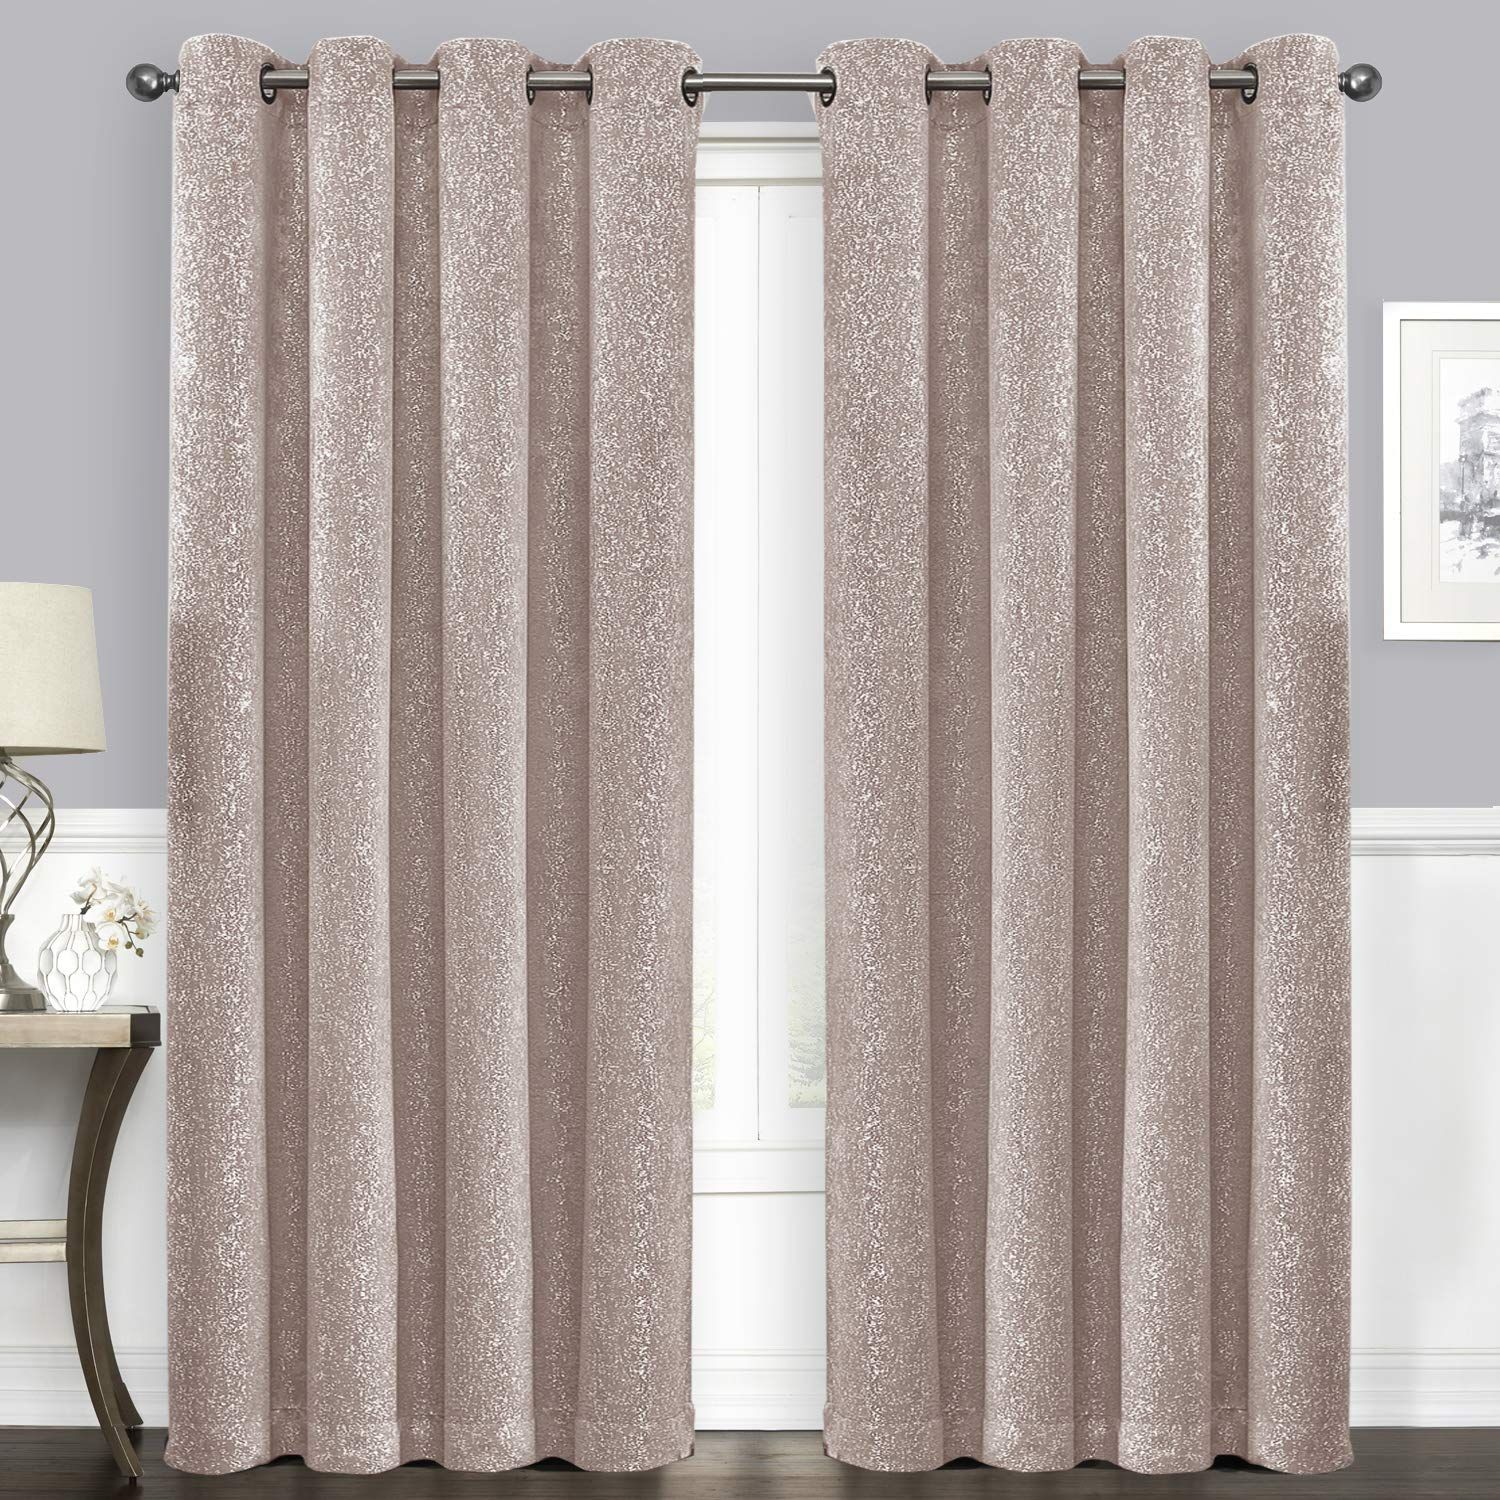 Suo Ai Textile Blackout Curtains Thermal Insulated Drapes Grommet Panels Blackout Silver Window Curtains Starry Dot Insulated Drapes Curtains Darkening Drapes